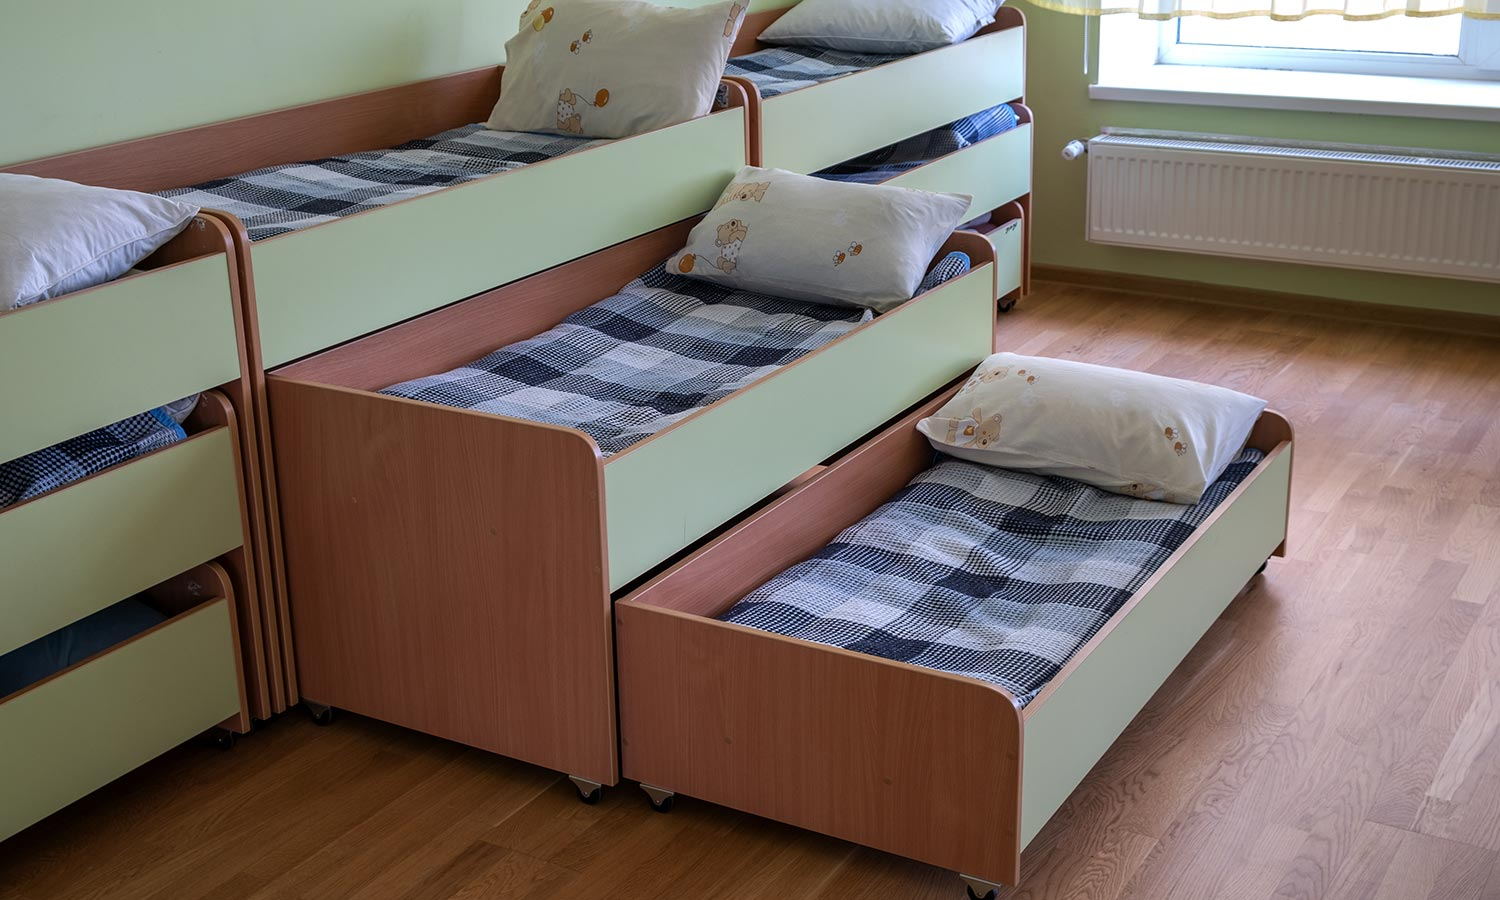 A stacked trundle bed that pulls out to reveal 3 beds in total